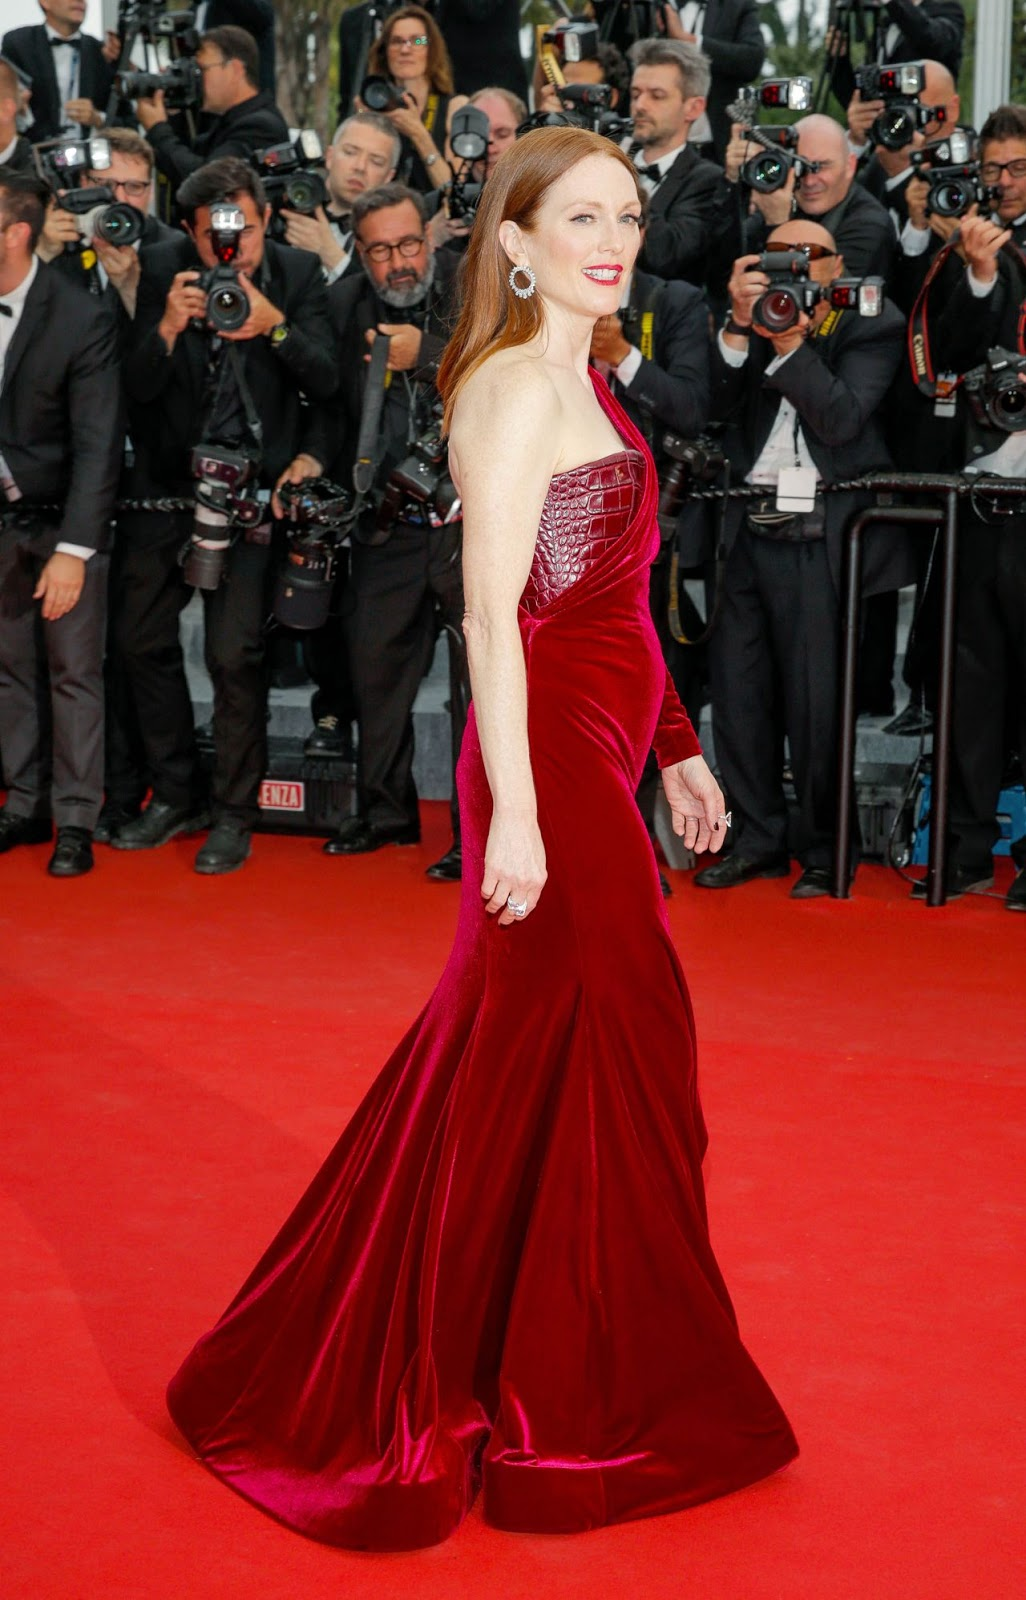 HQ Photos of Julianne Moore in Red Hot Dress Mad Max Fury Road Premiere 2015 Cannes Film Festival